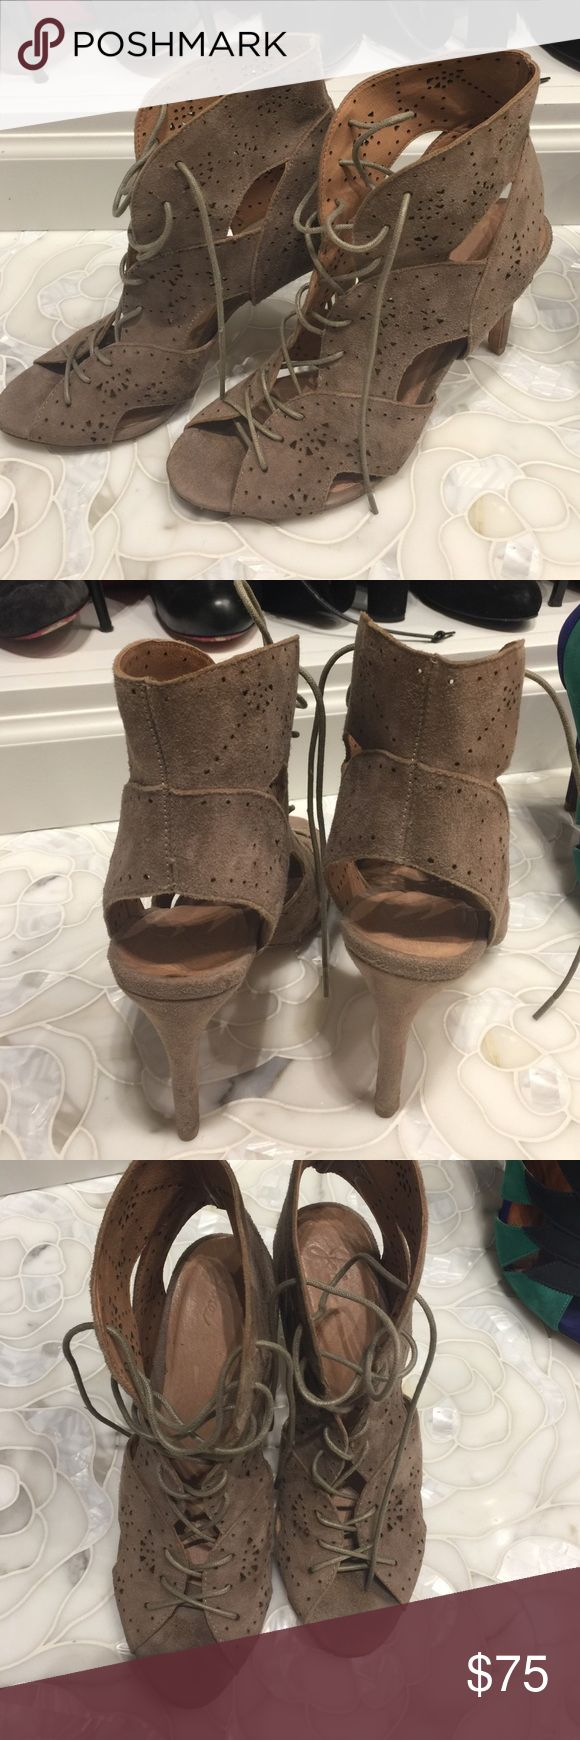 Joie lace up bootie EUC, right on trend. Taupe suede. Joie Shoes Ankle Boots & Booties